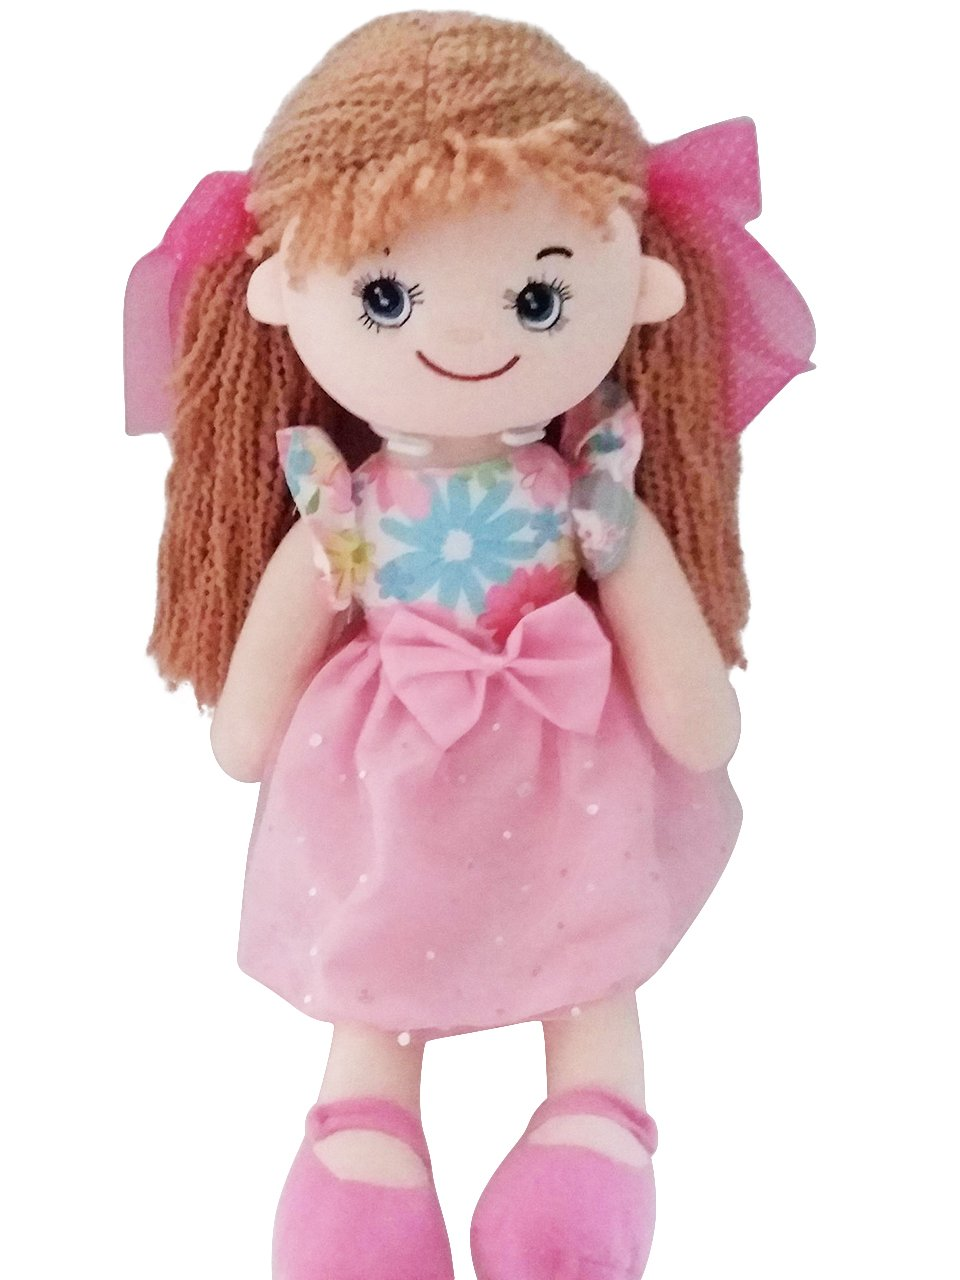 Lucy the Rag Doll For Sale Odd Peanut